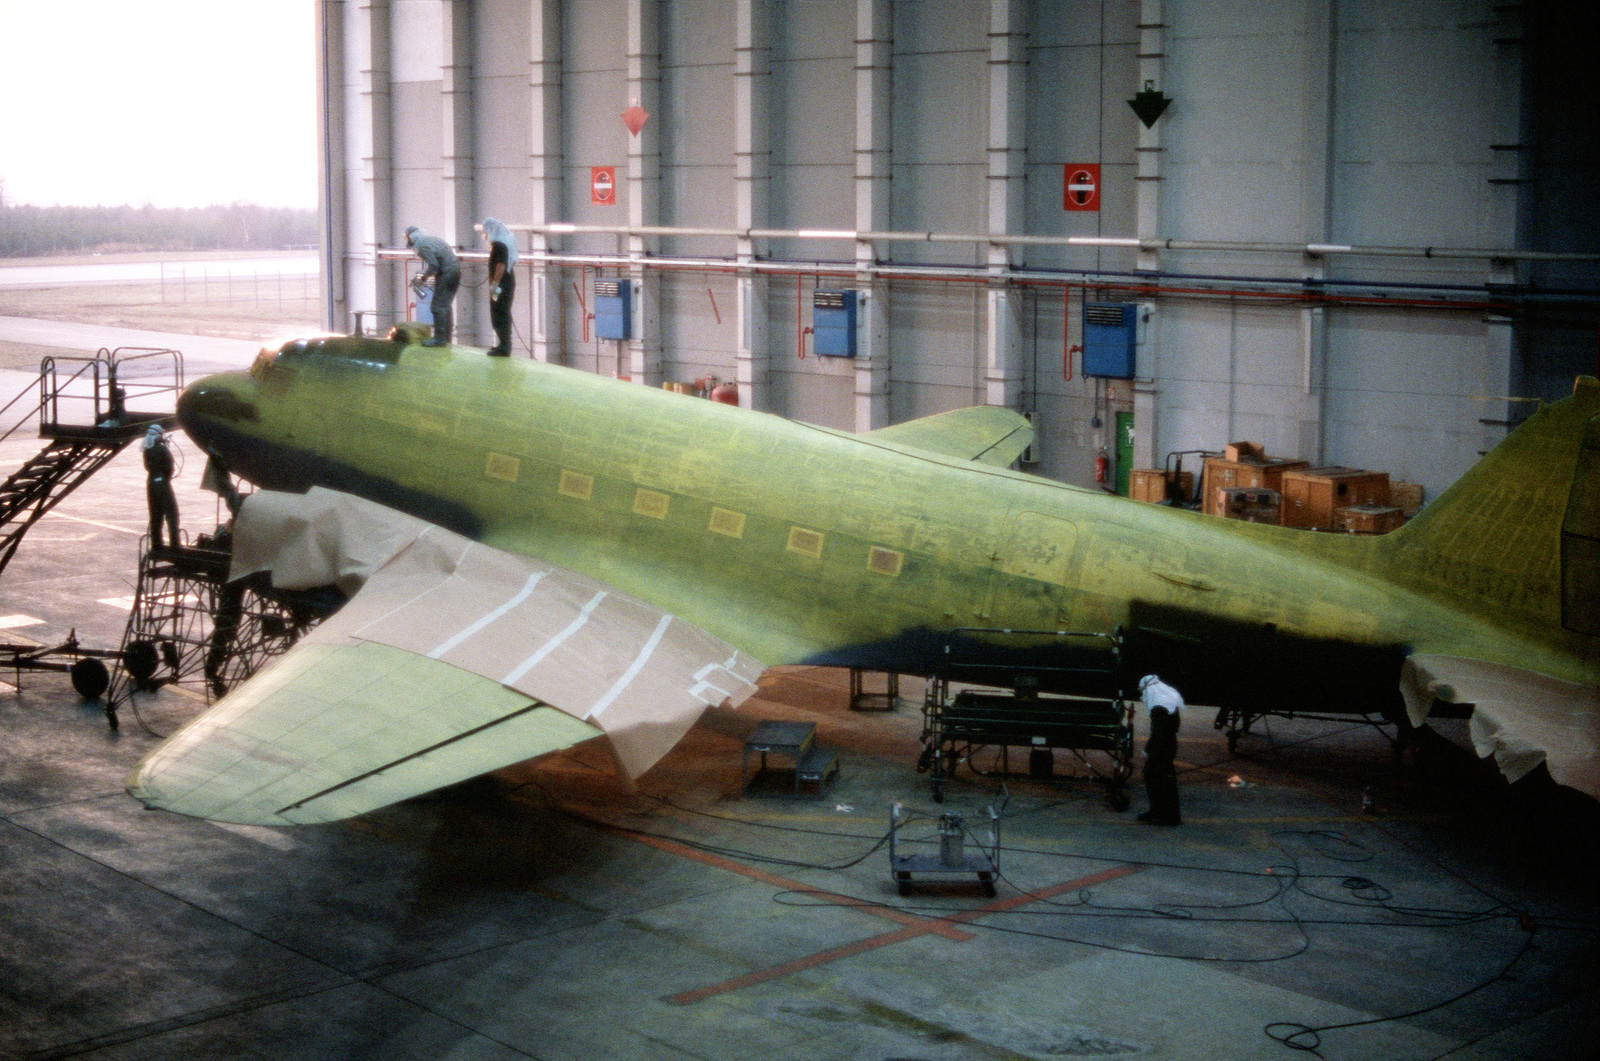 Members of the 435th Organizational Maintenance Squadron and the 435th Field Maintenance Squadron paint a C-47 Skytrain aircraft.  The historic Skytrain, which played a vital supply role during the Berlin Airlift of 1948-1949, is undergoing restoration fo